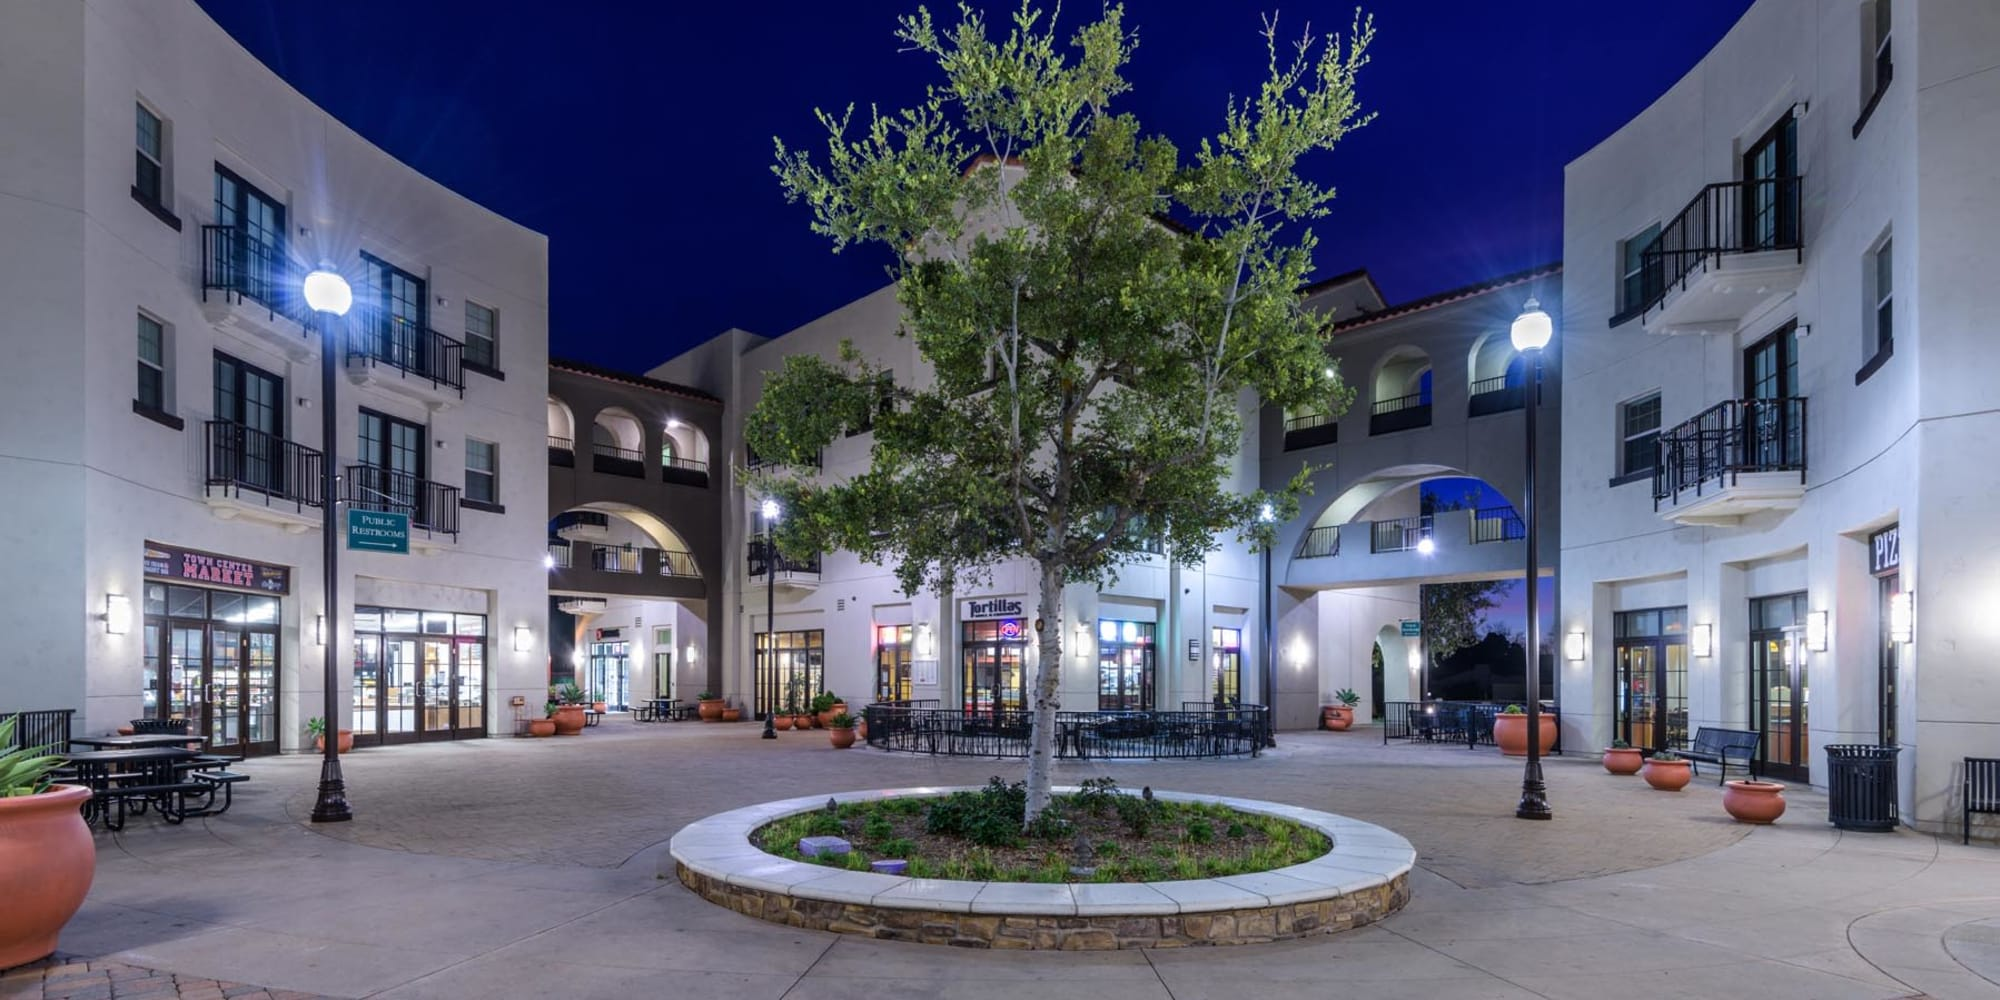 Well-lit retail courtyard in the evening at Mission Hills in Camarillo, California